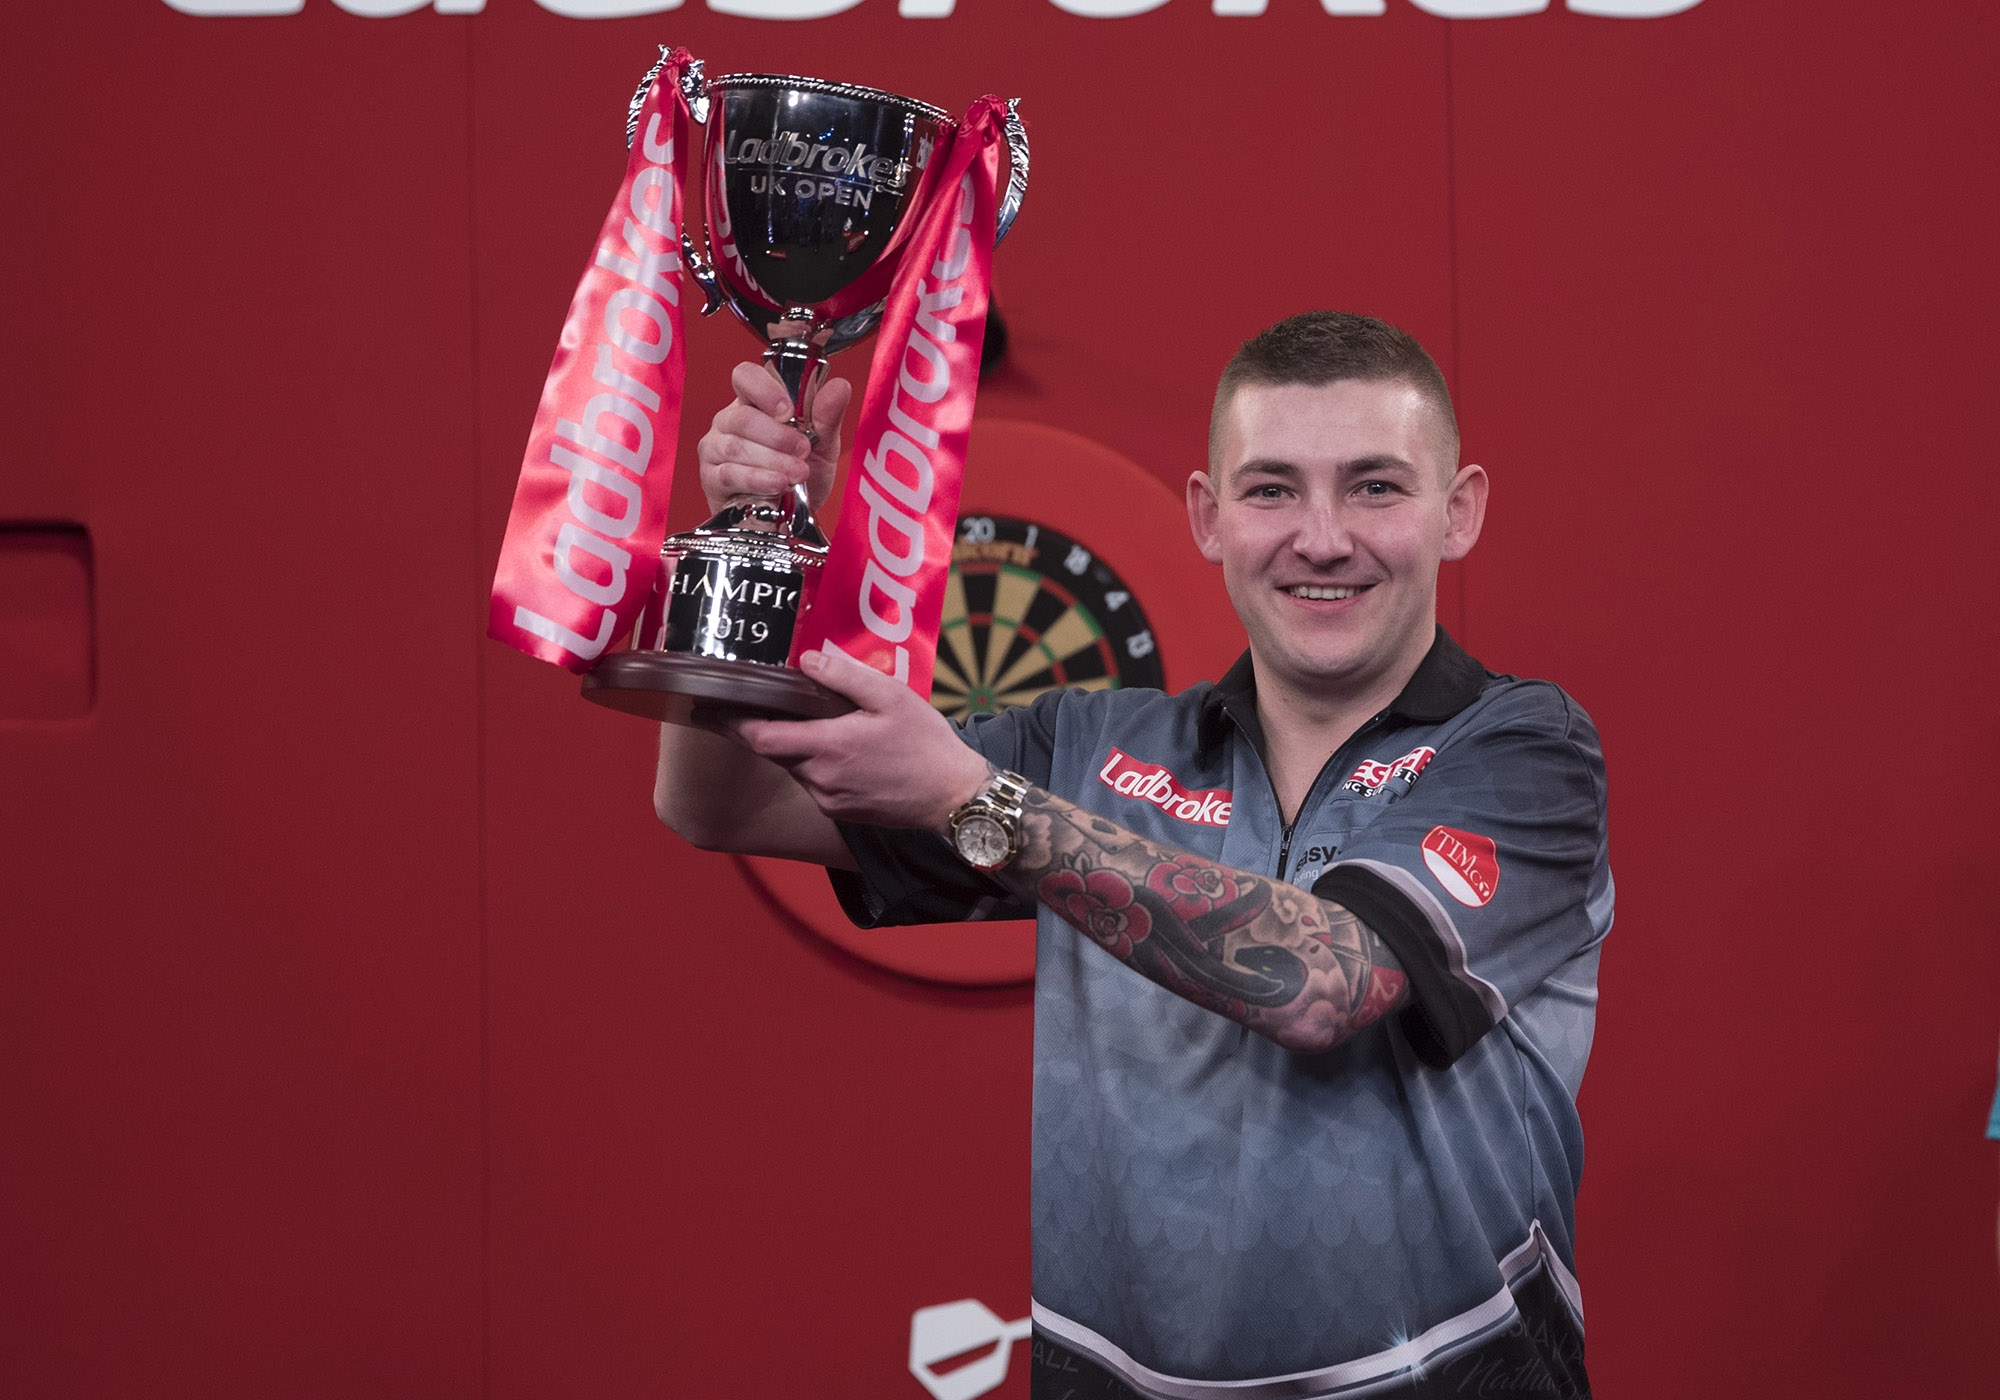 5 things we learned from the 2019 UK Open Darts as new powers rise on the oche